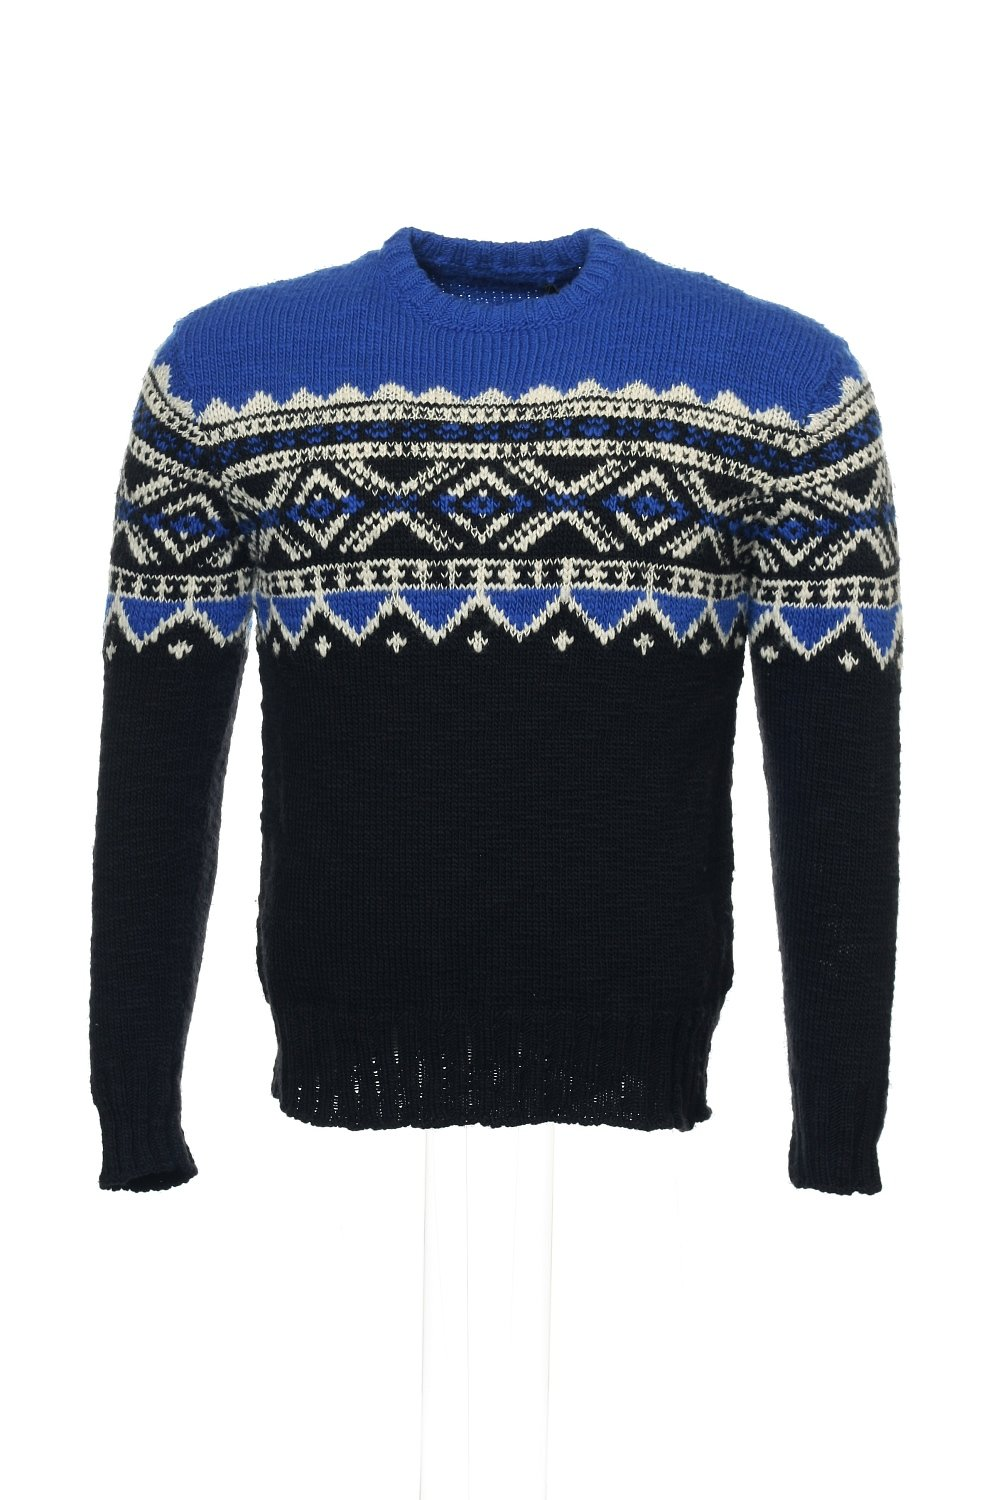 Polo Ralph Lauren Men's Nordic-Print Sweater Small Blue/Black/White by RALPH LAUREN (Image #1)